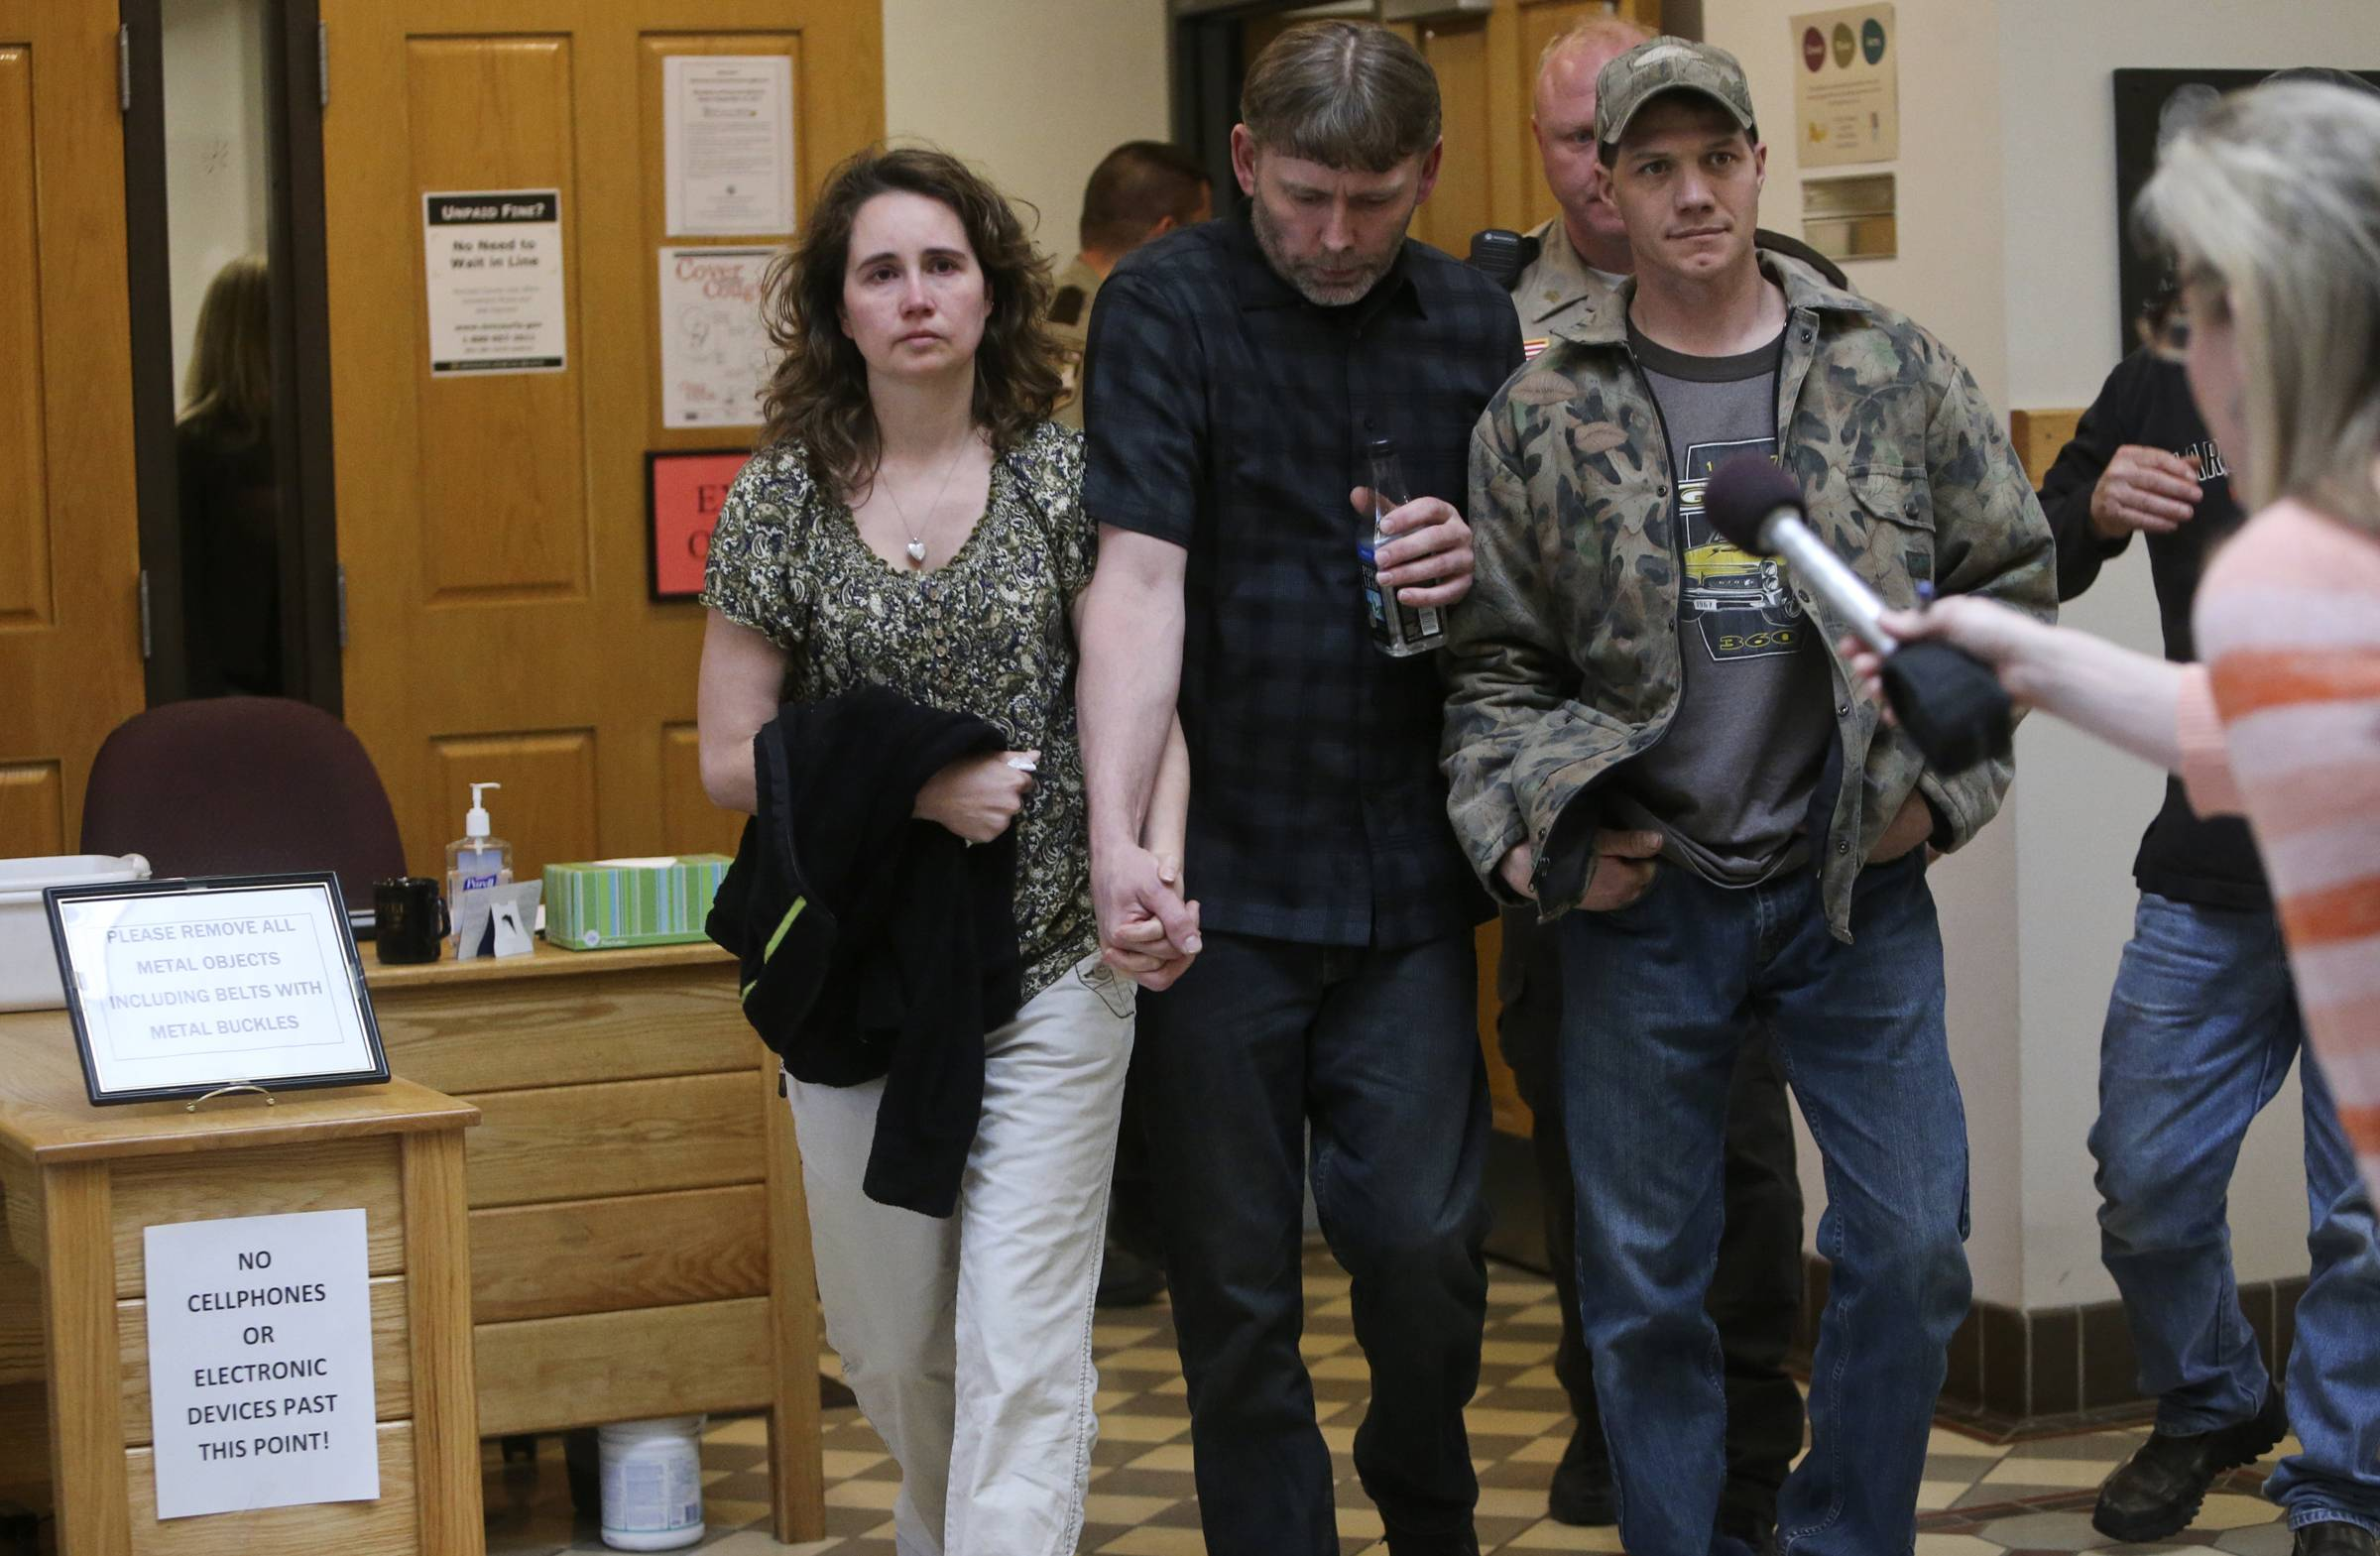 Jenny and Jay Kifer, the parents of Hailey Kifer, leave the courtroom after Byron Smith was found guilty in the murders of Nick Brady and Hailey at the Morrison County Courthouse in Little Falls, Minn.